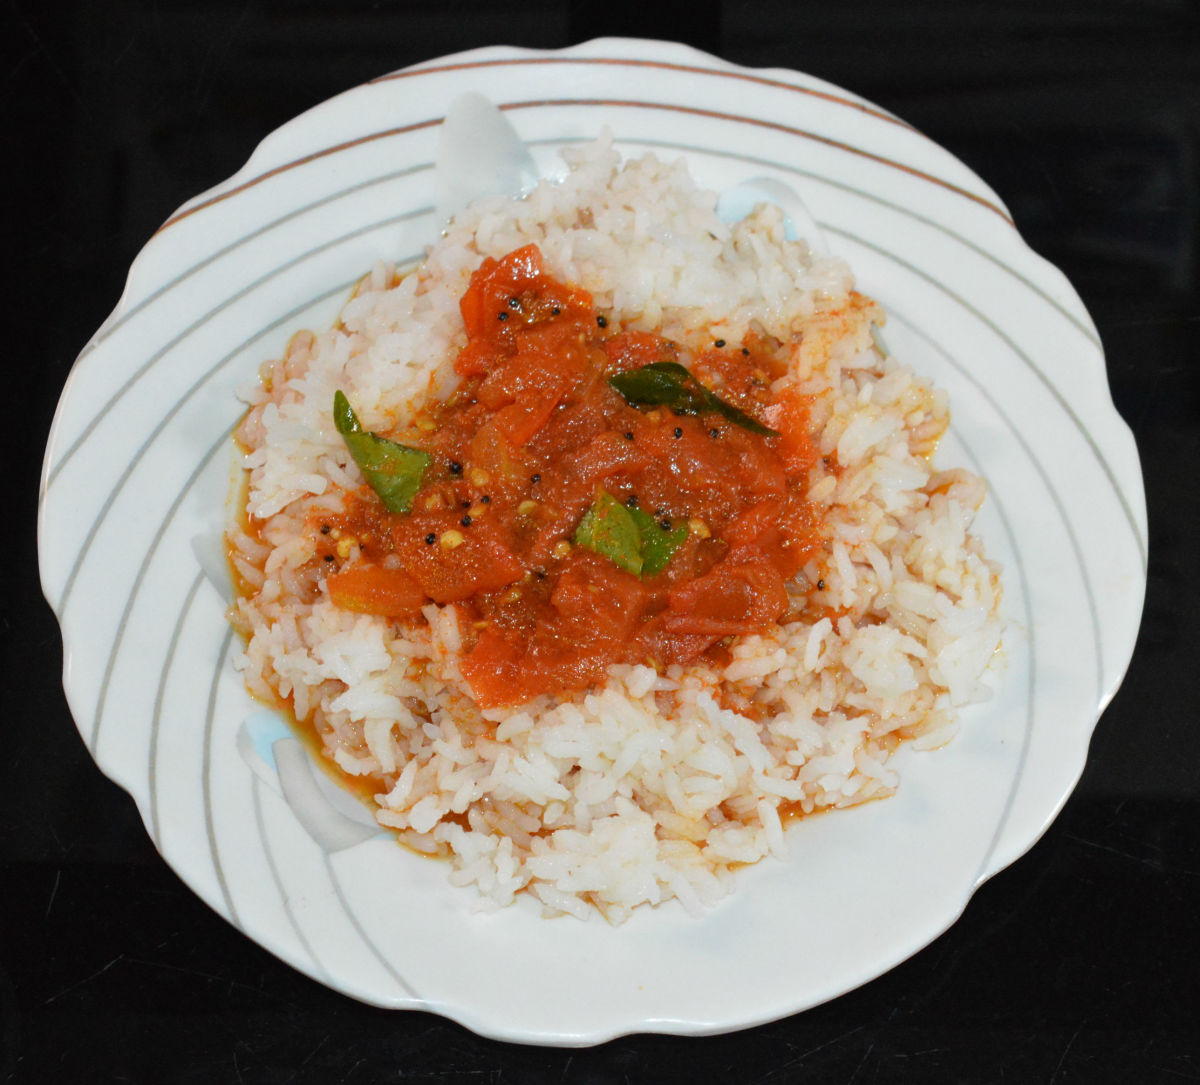 Serve hot steamed rice with this yummy, sweet, sour, and spicy side dish. Happy eating!